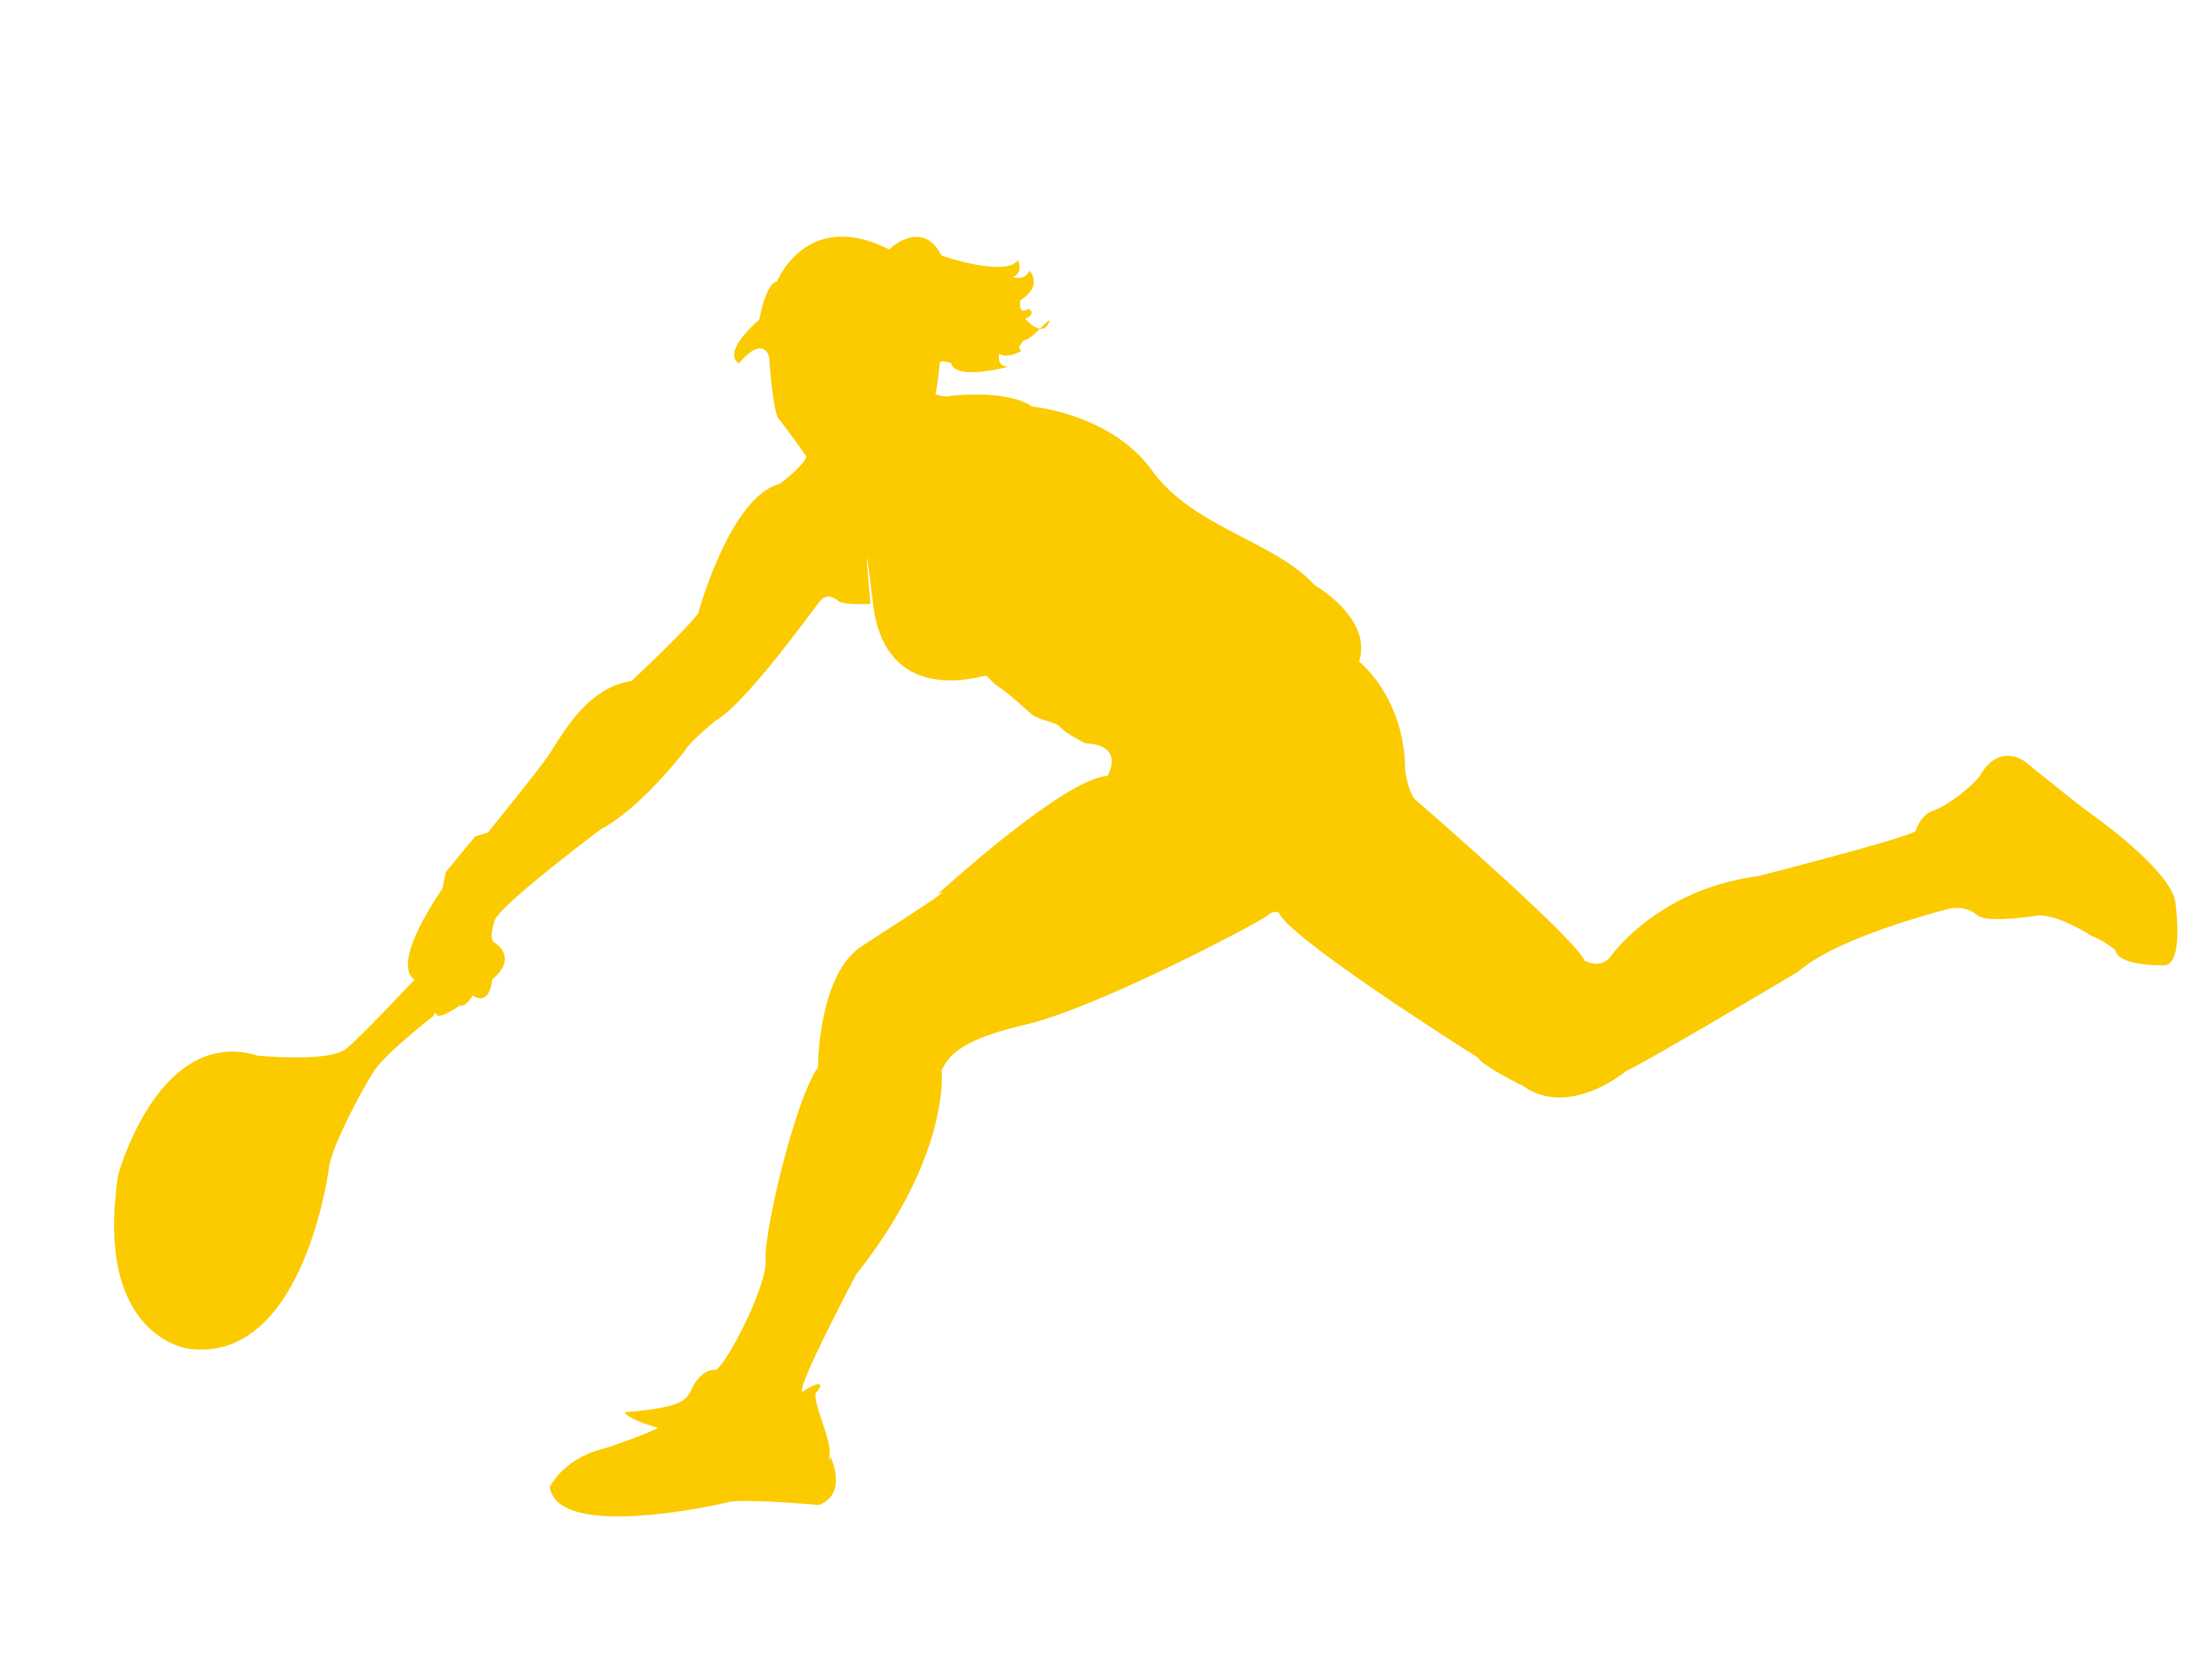 Silhouette at getdrawings com. Female clipart badminton player